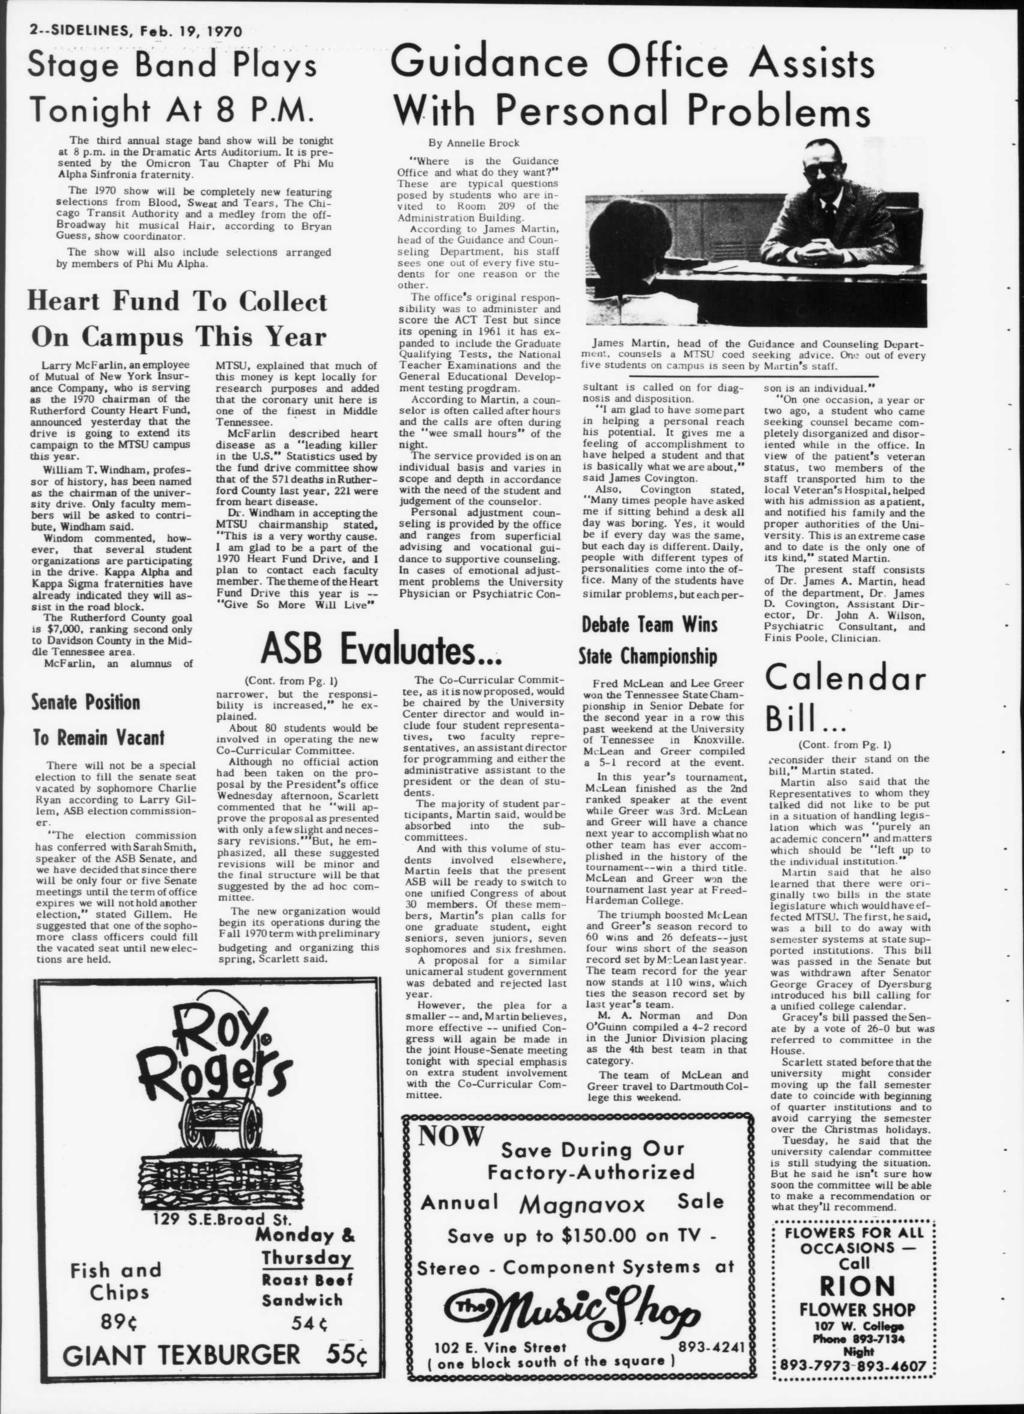 2--SIDEUNES, Feb. 19, 1970 Stage Band Plays Tonght At 8 P.M. The thrd annual stage band show wll be tonght at 8 p.m. n the Dramatc Arts Audtorum.